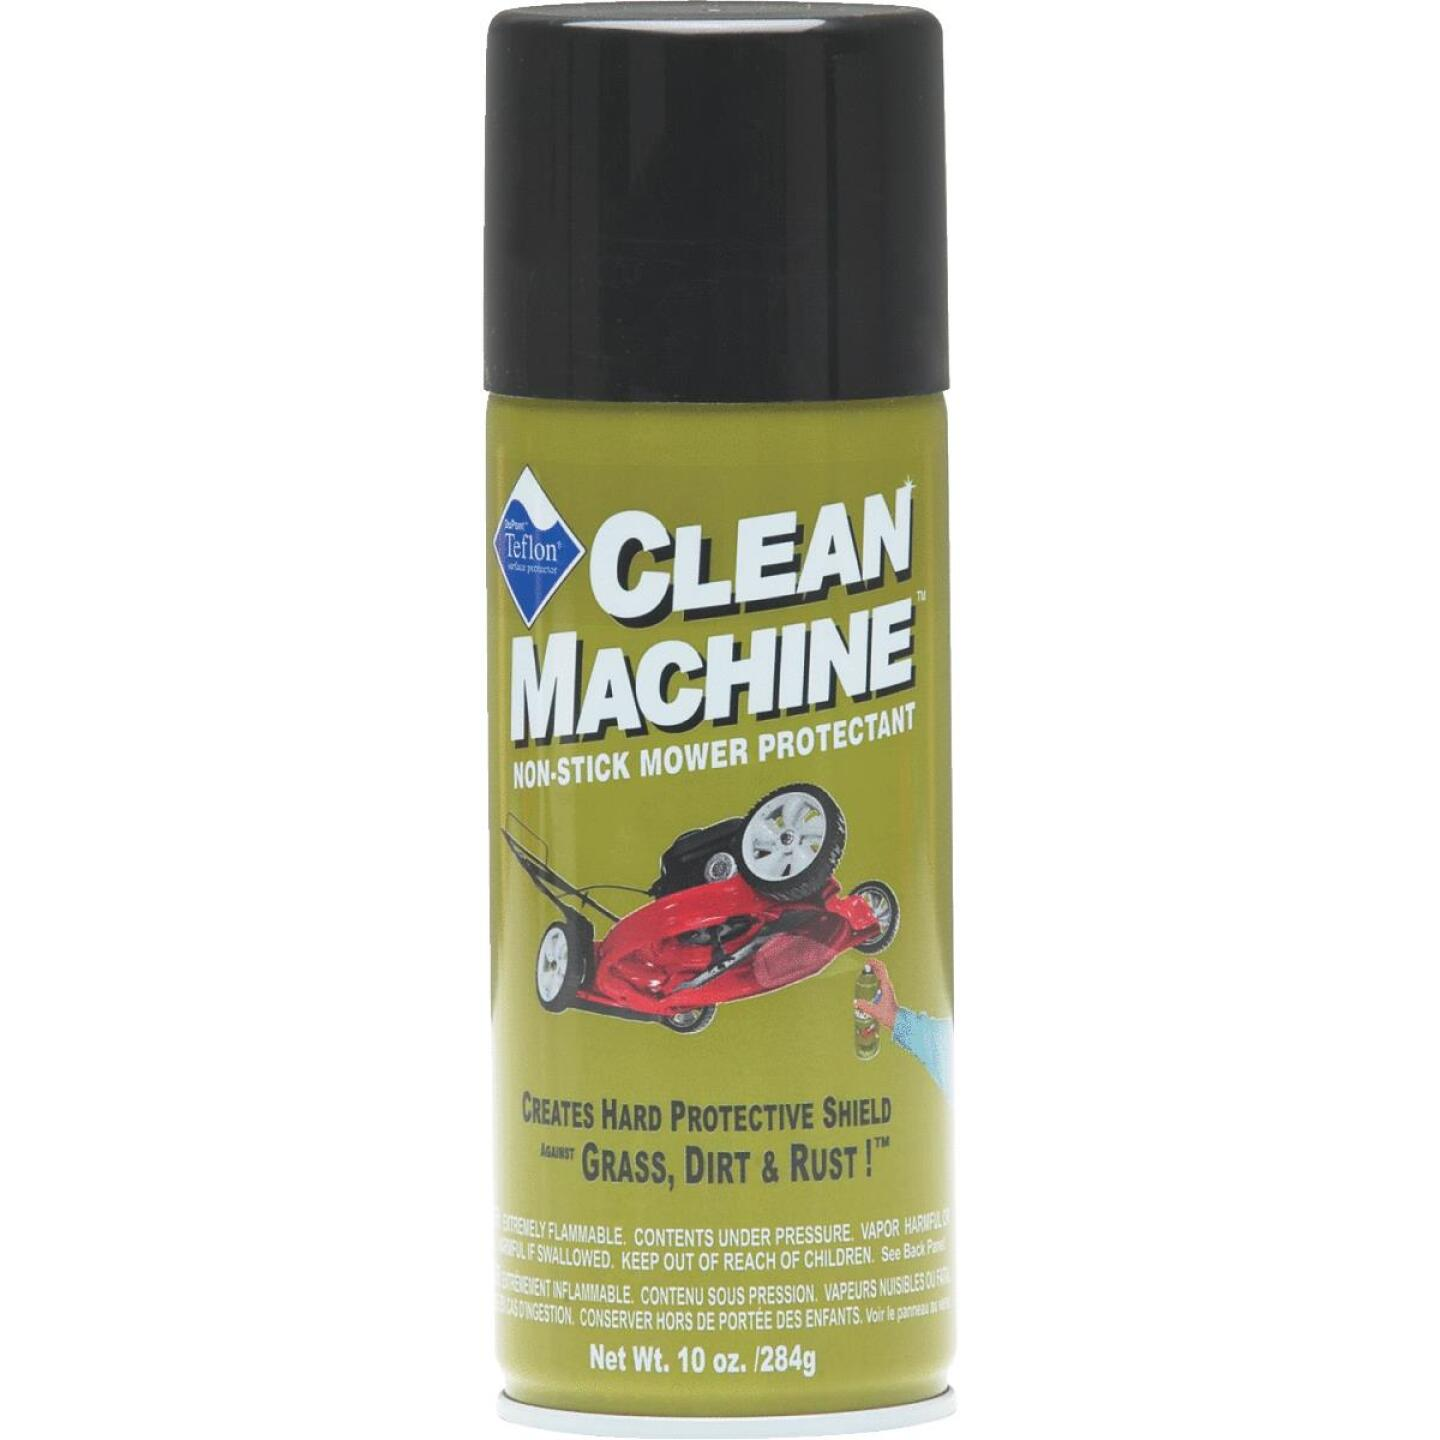 Good Vibrations Clean Machine Nonstick Mower Protectant Image 1